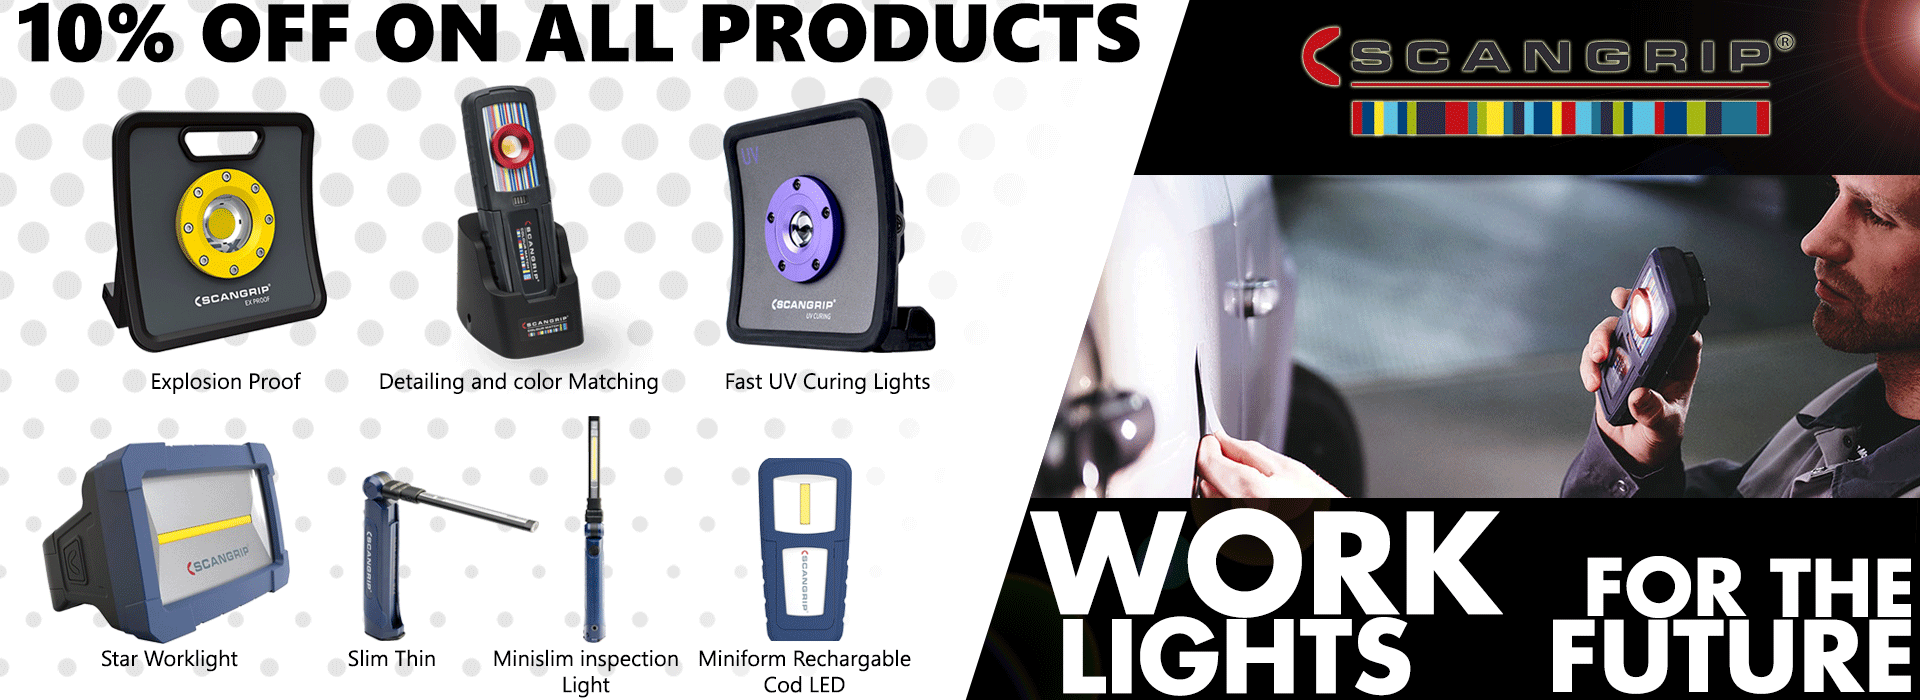 Scan-grip-worklights-handy-stores